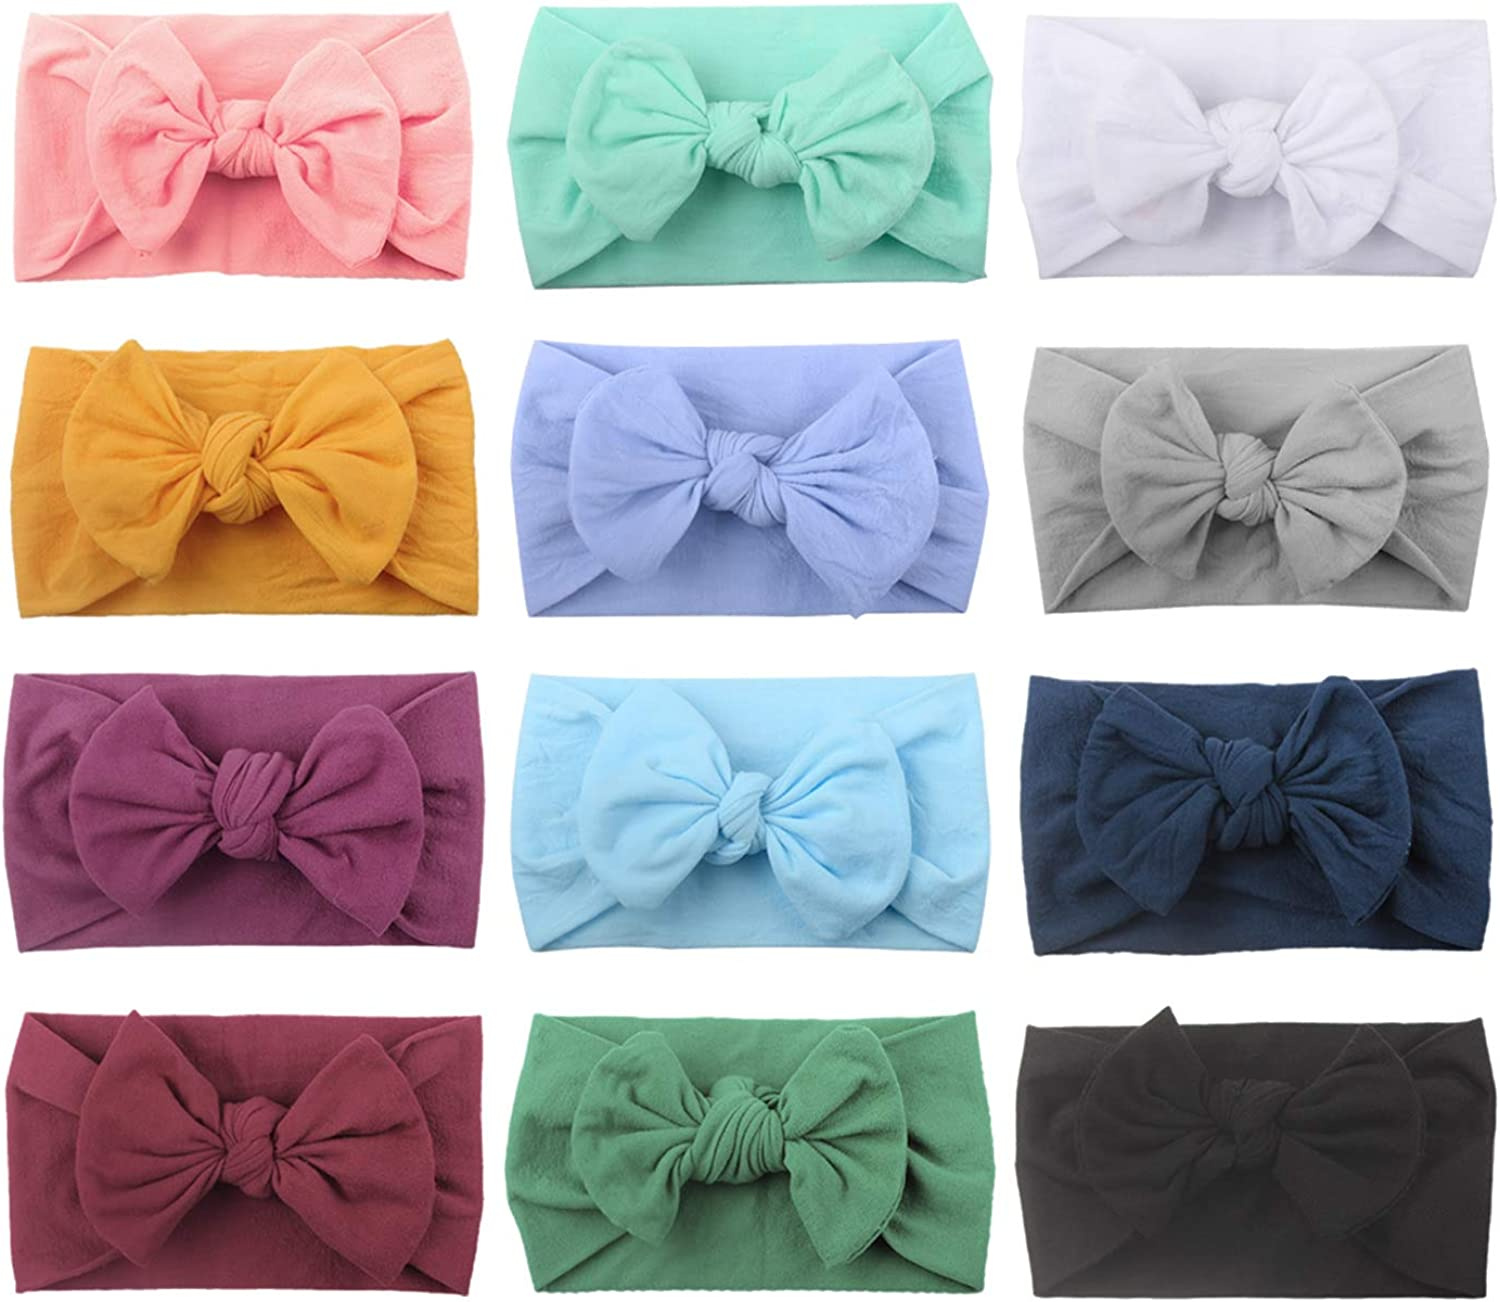 12 A surprise price is realized San Francisco Mall PACK Elastic Stretchy Super Soft Wide Bowknot Nylon Hea Plain